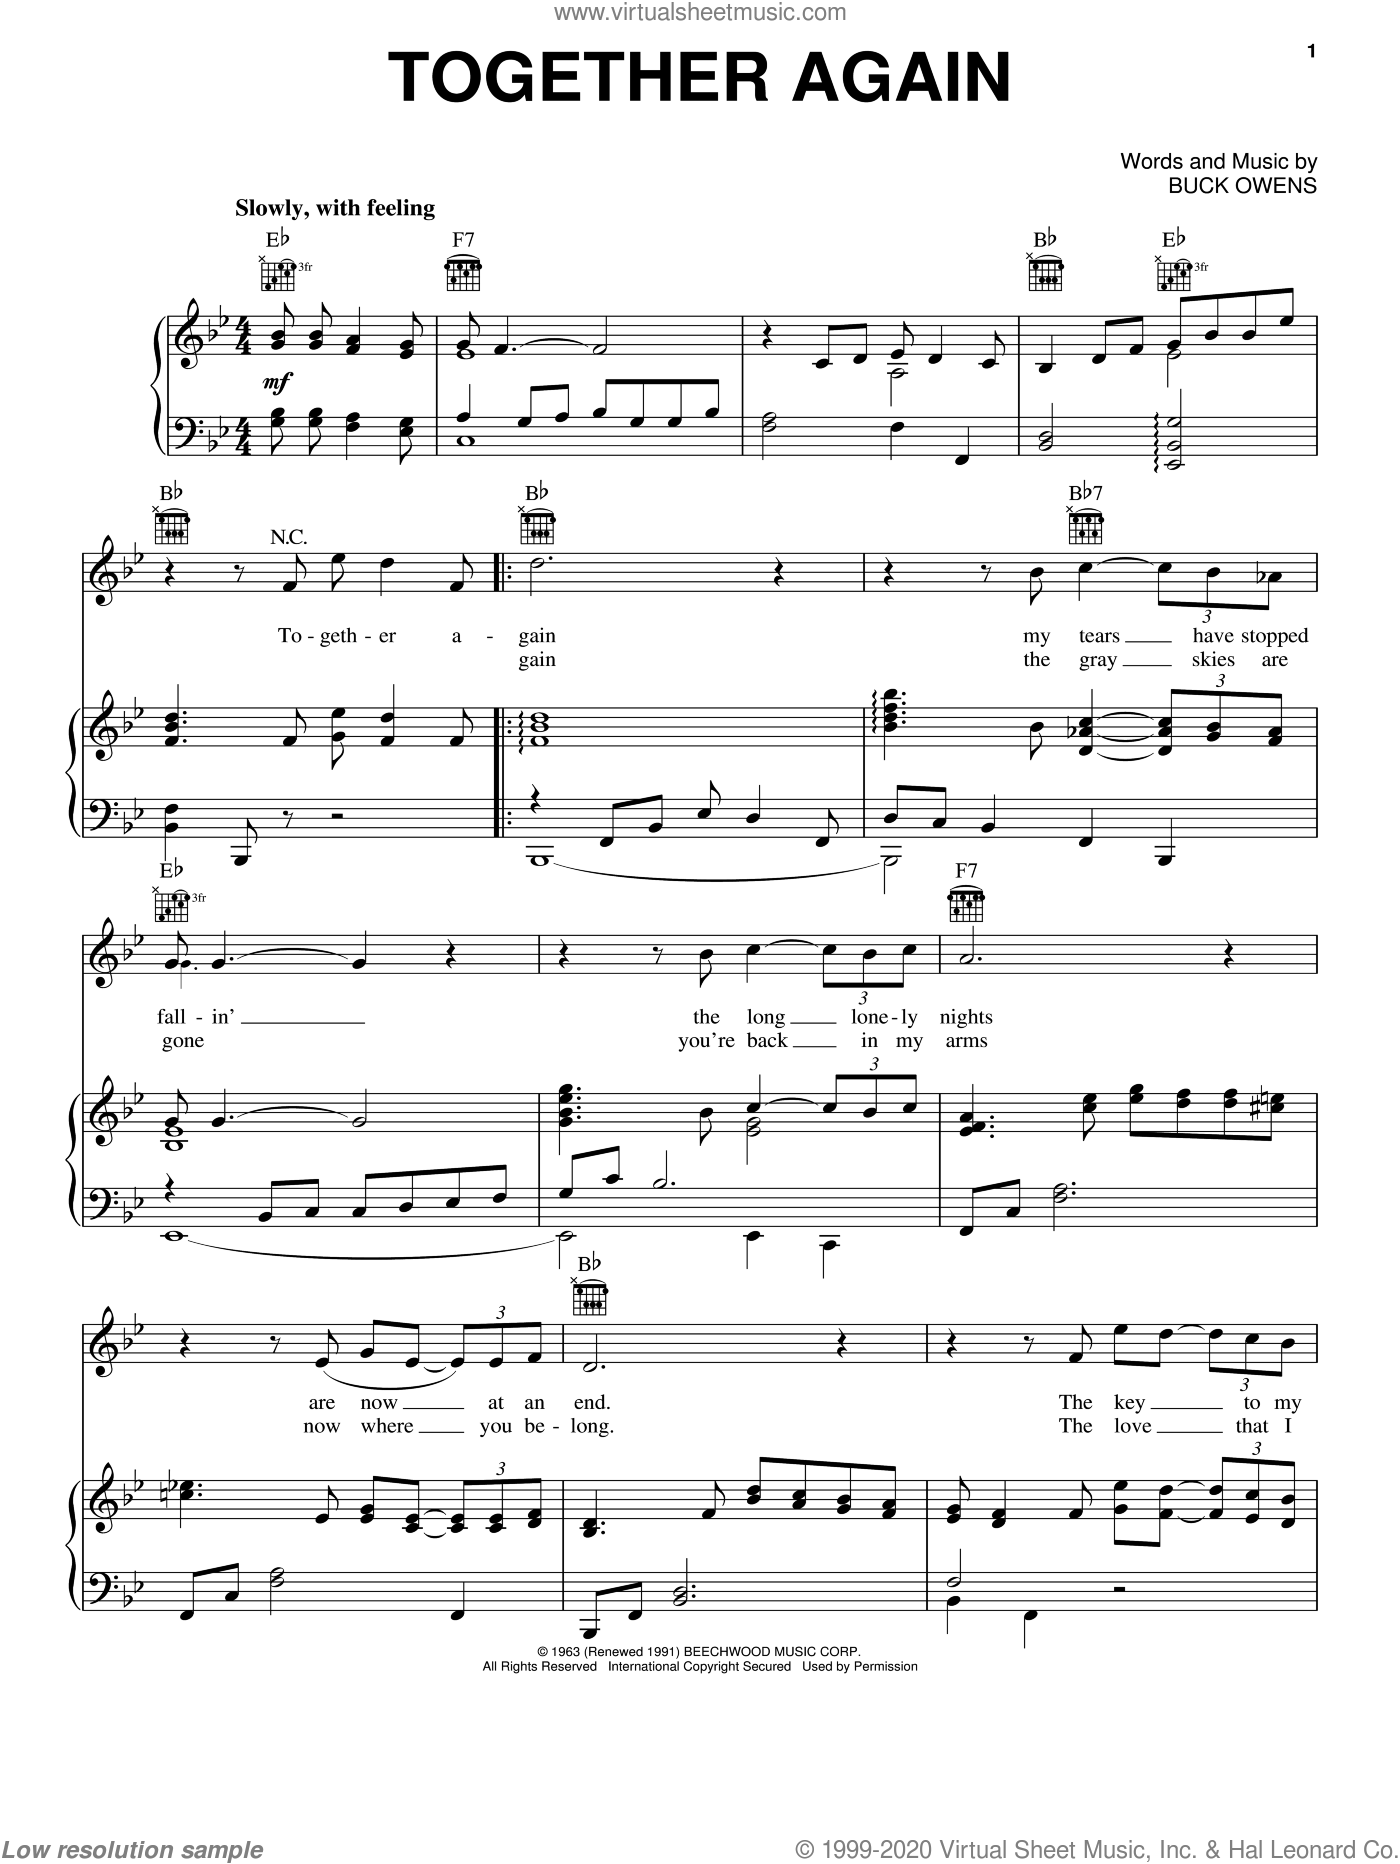 Together Again sheet music for voice, piano or guitar by Emmylou Harris